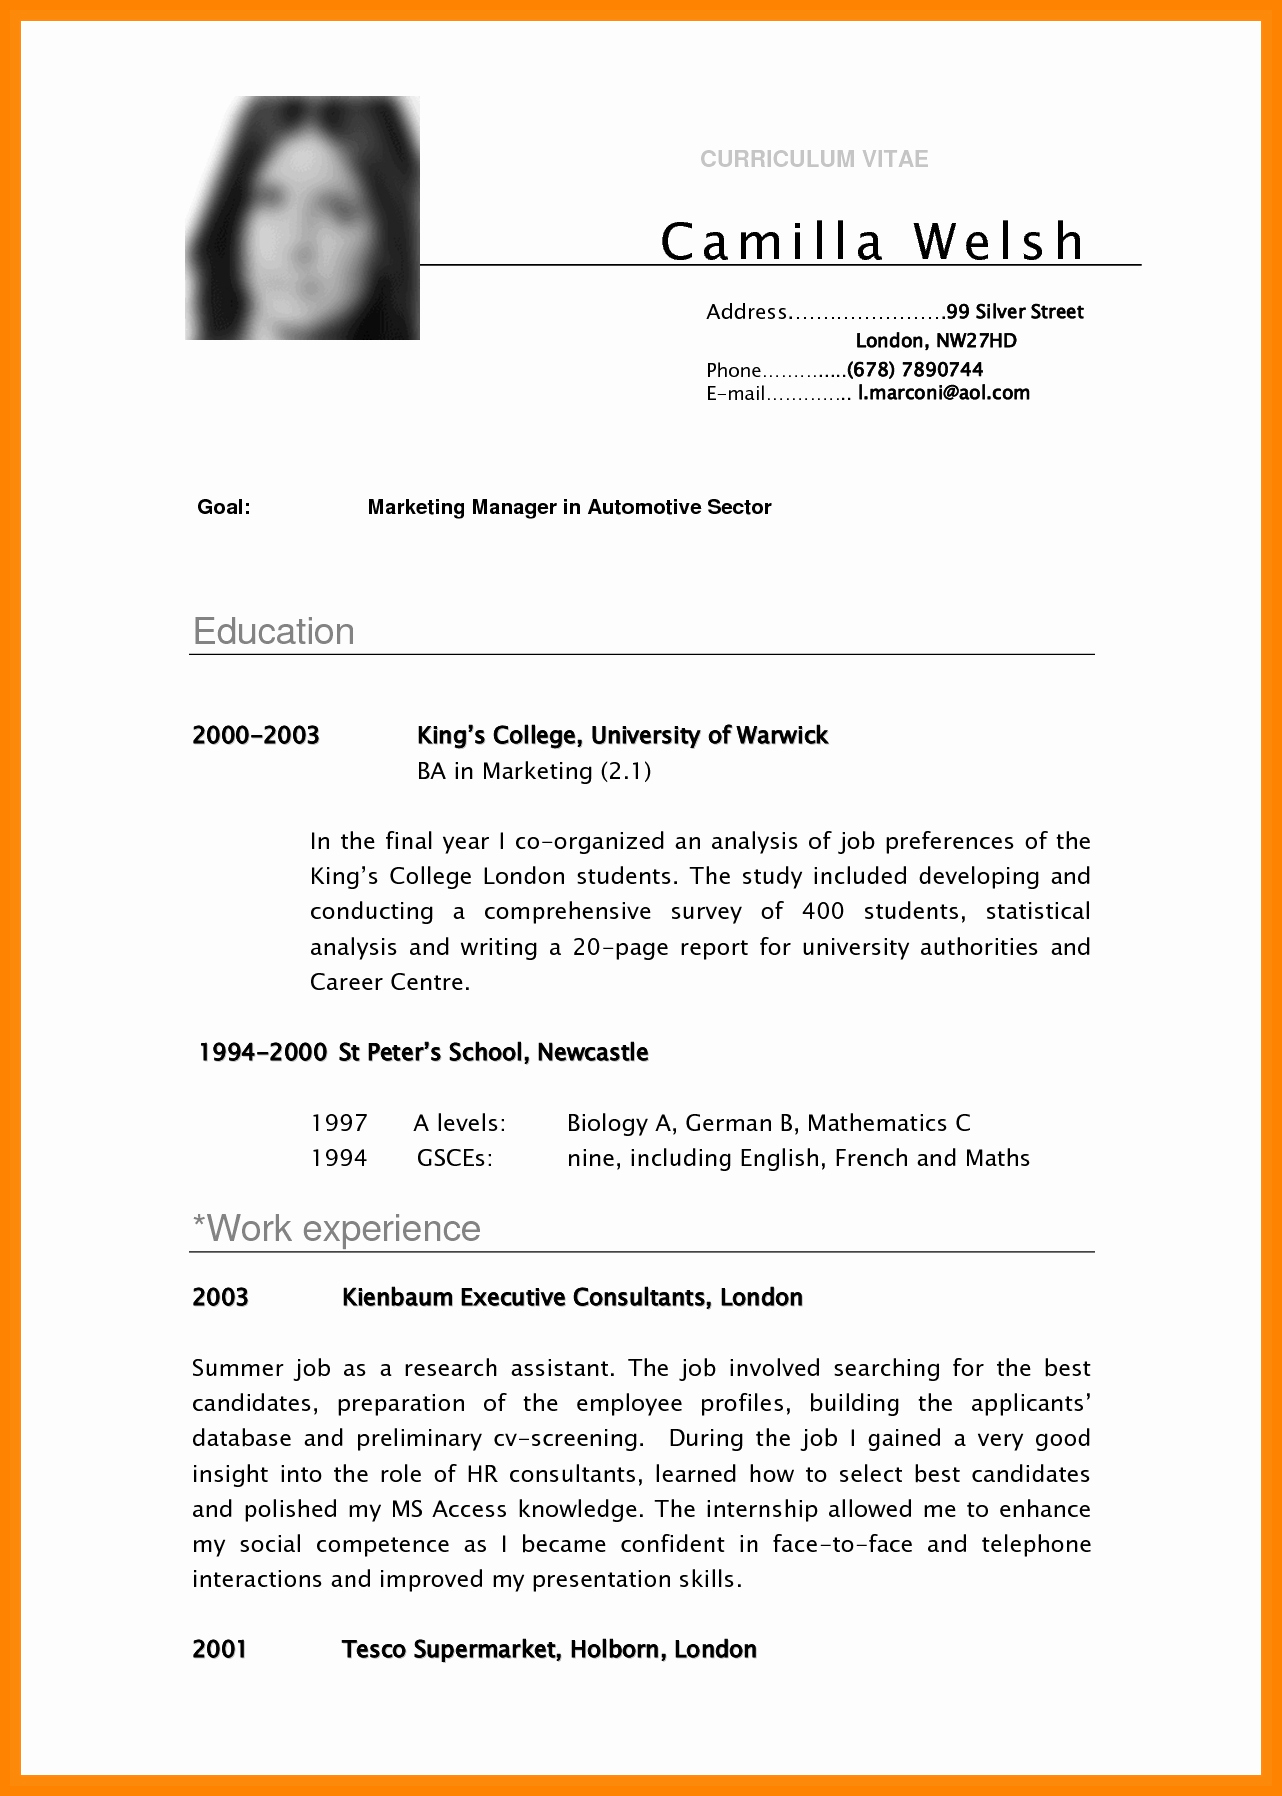 Cv Examples for Students New 5 Cv Samples for Undergraduate Students